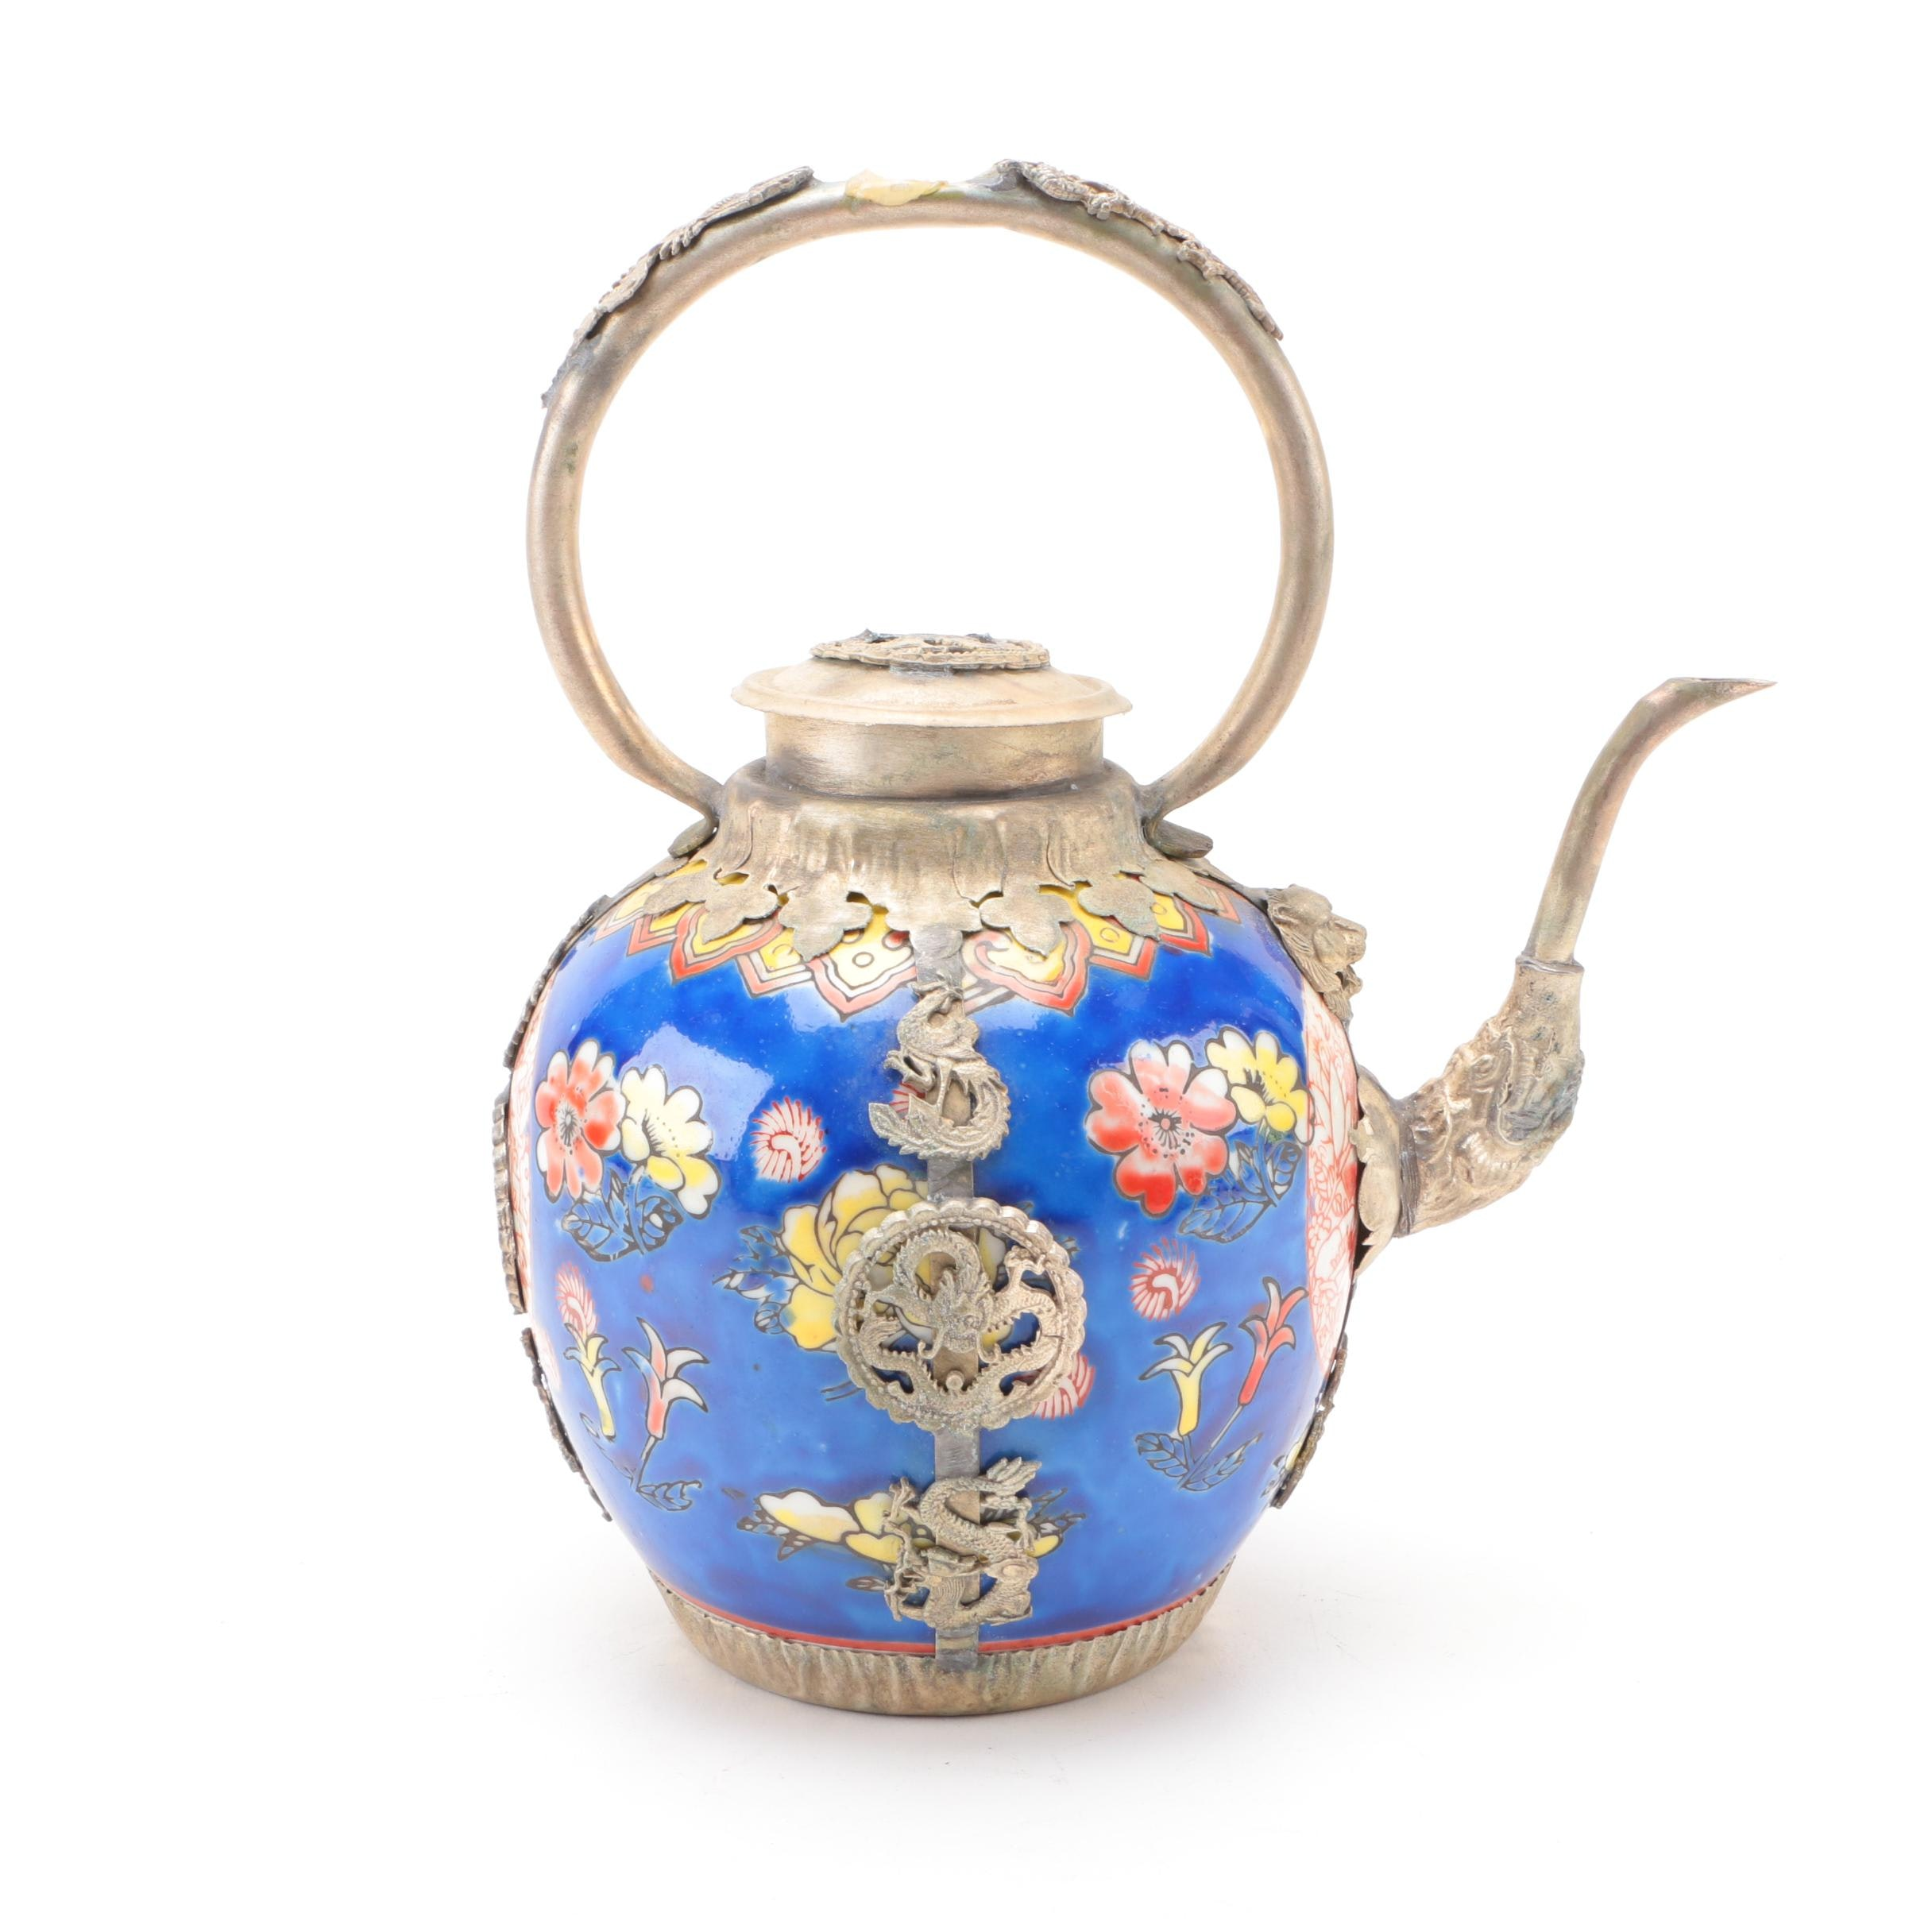 Chinese Brass Plate and Ceramic Teapot